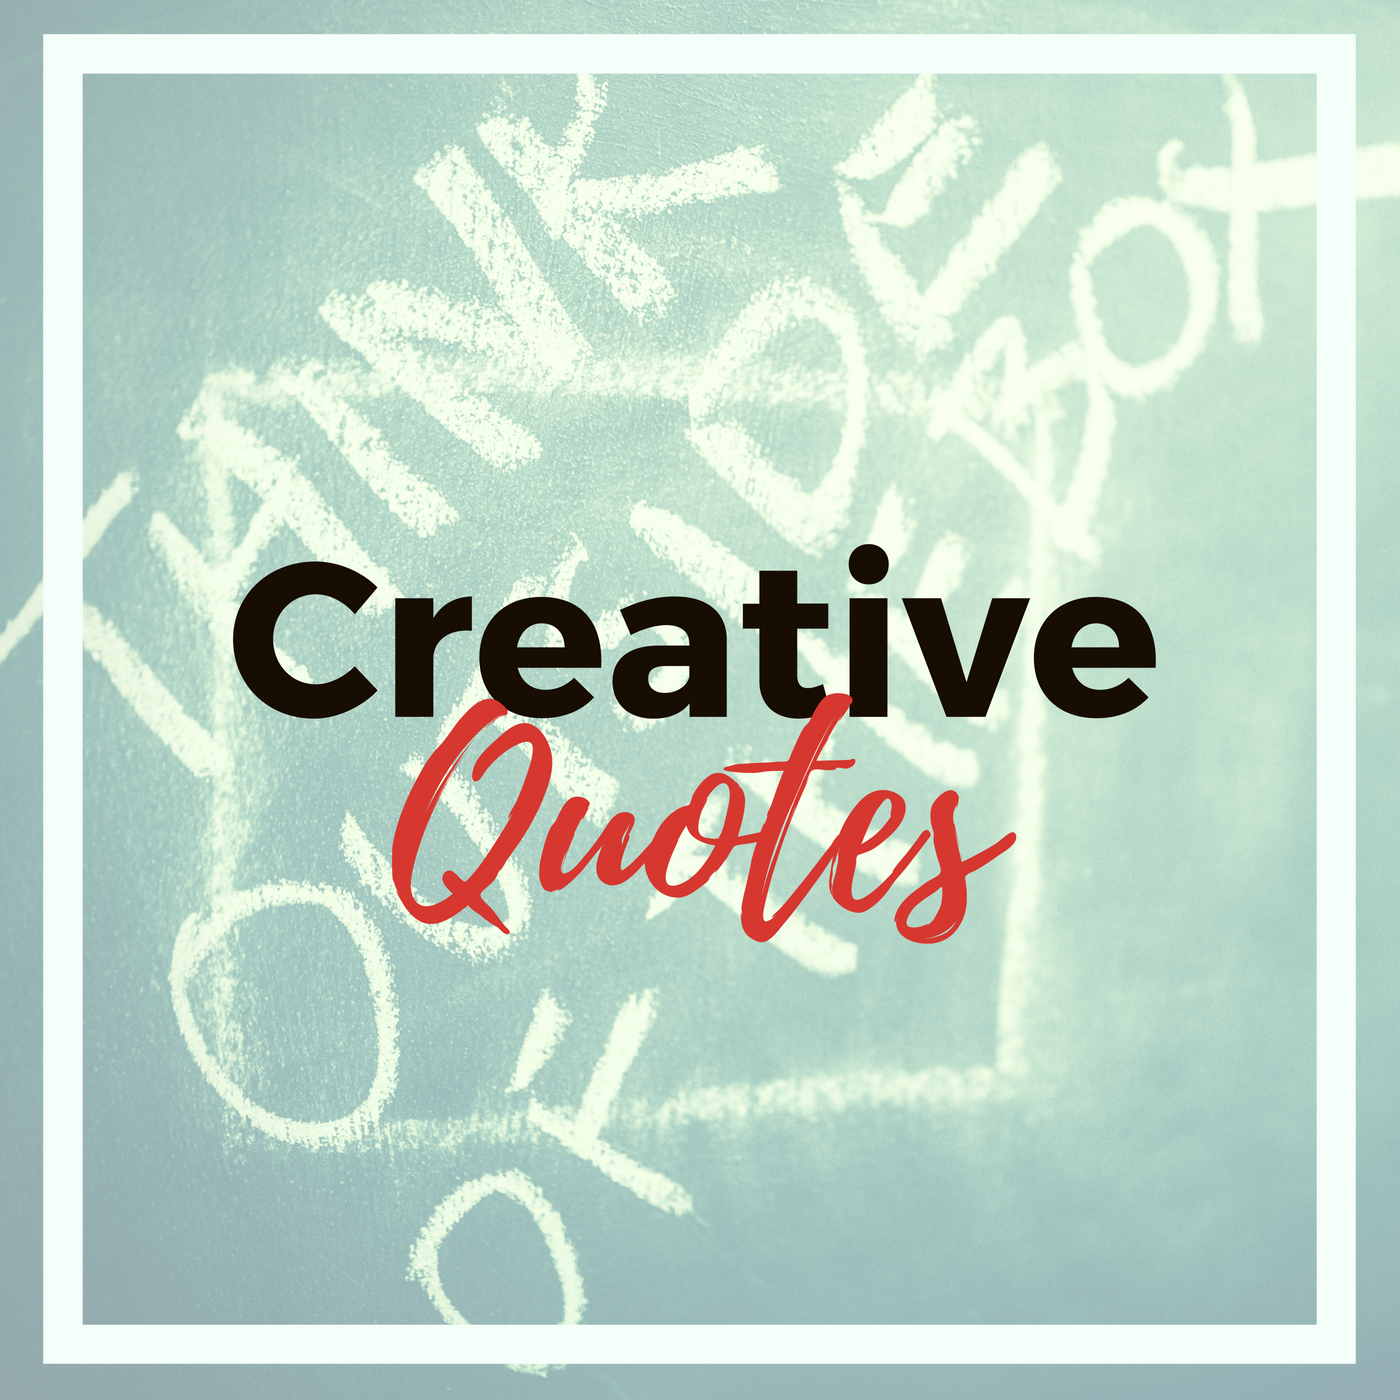 Take a look at my collection of inspirational quotes that I use to keep me feeling creative. Click the image.